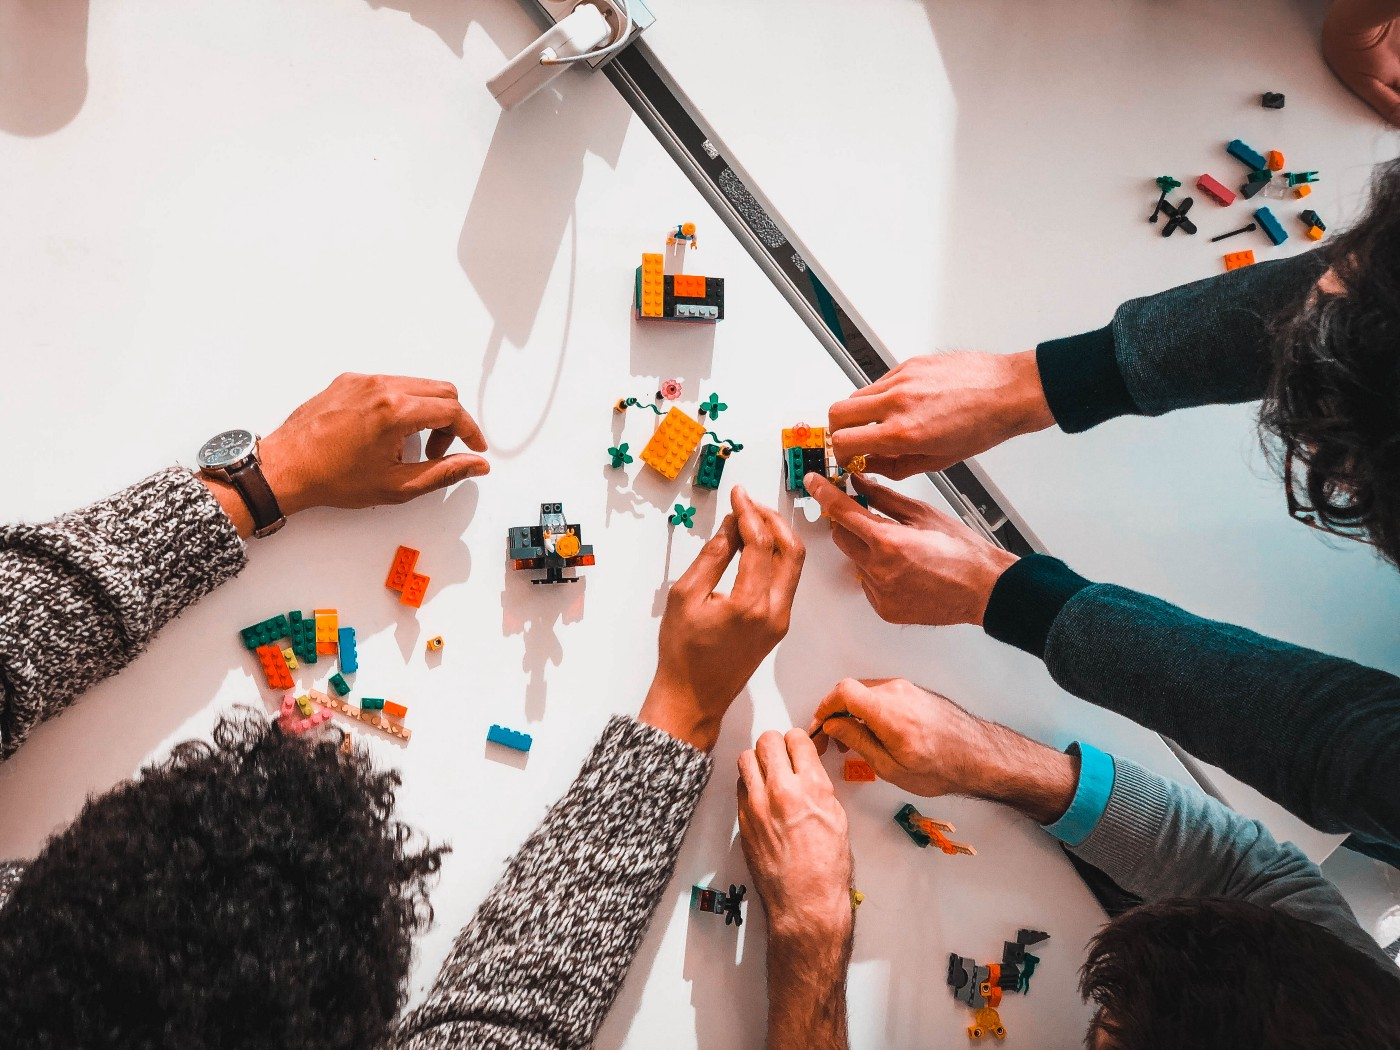 Picture of 3 people's hands building and playing with Legos